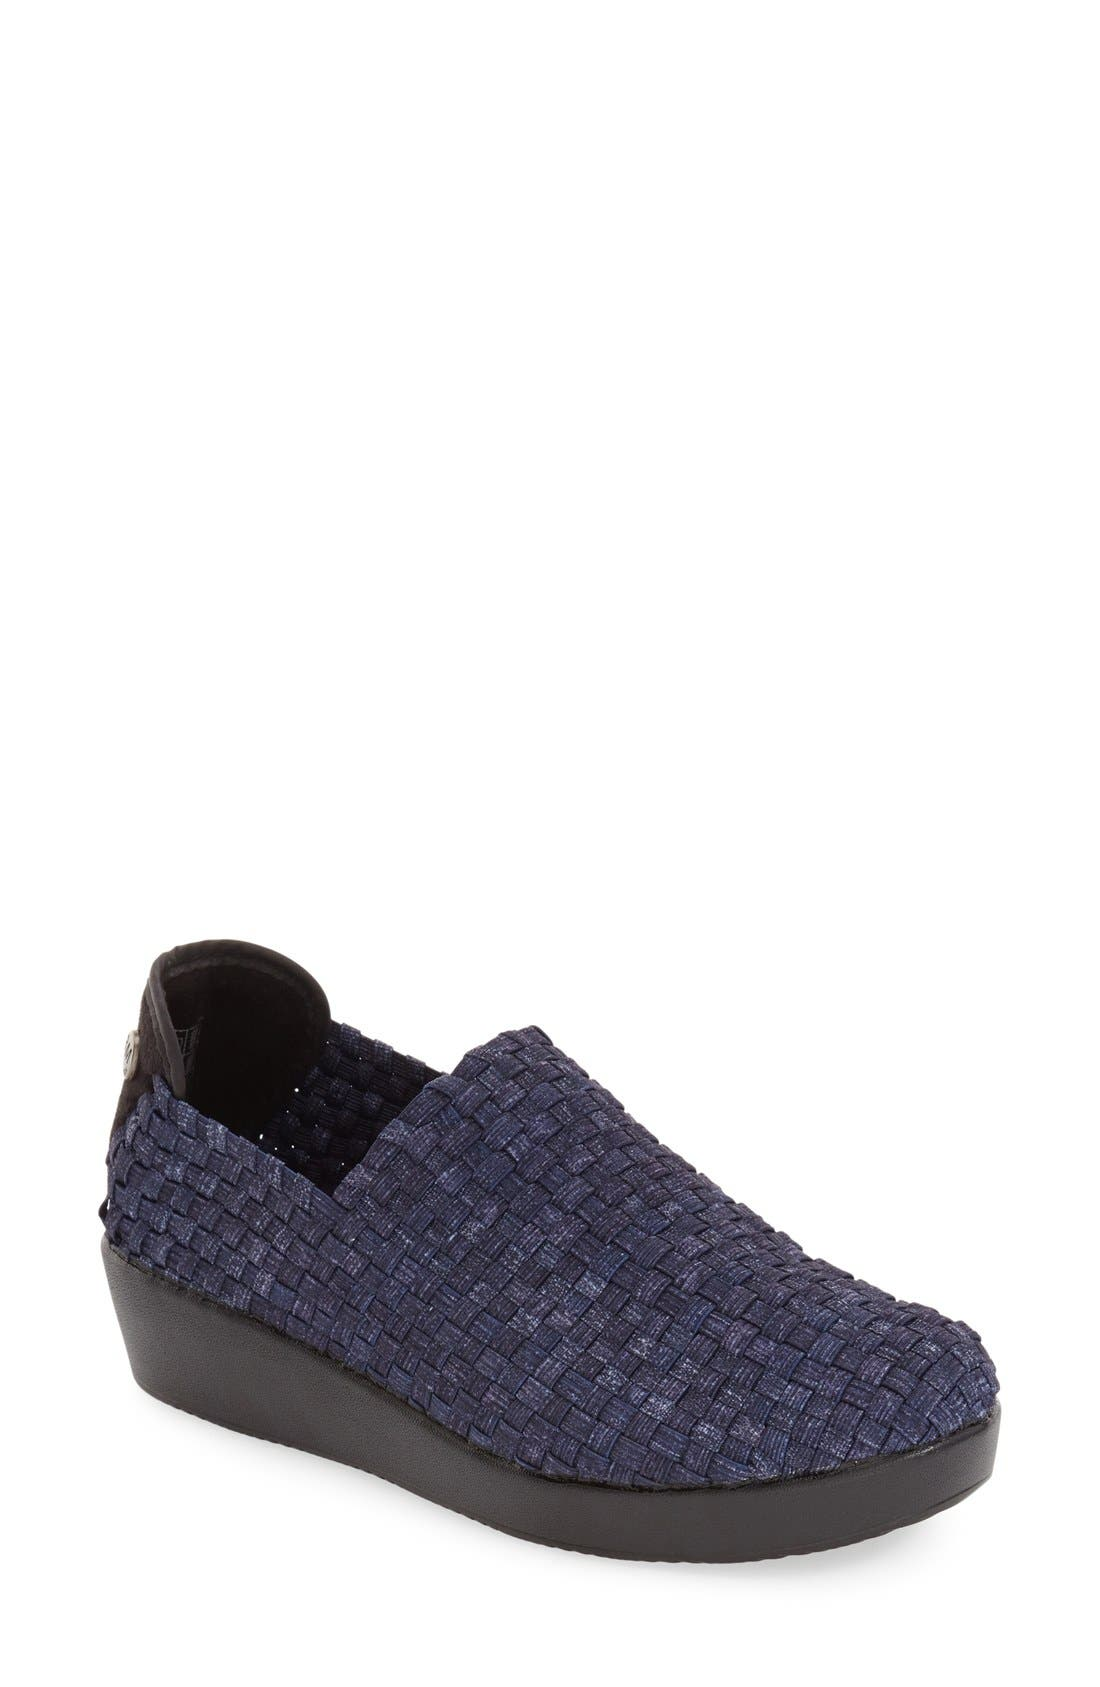 bernie mev. 'Cha Cha' Wedge Slip-On (Women)